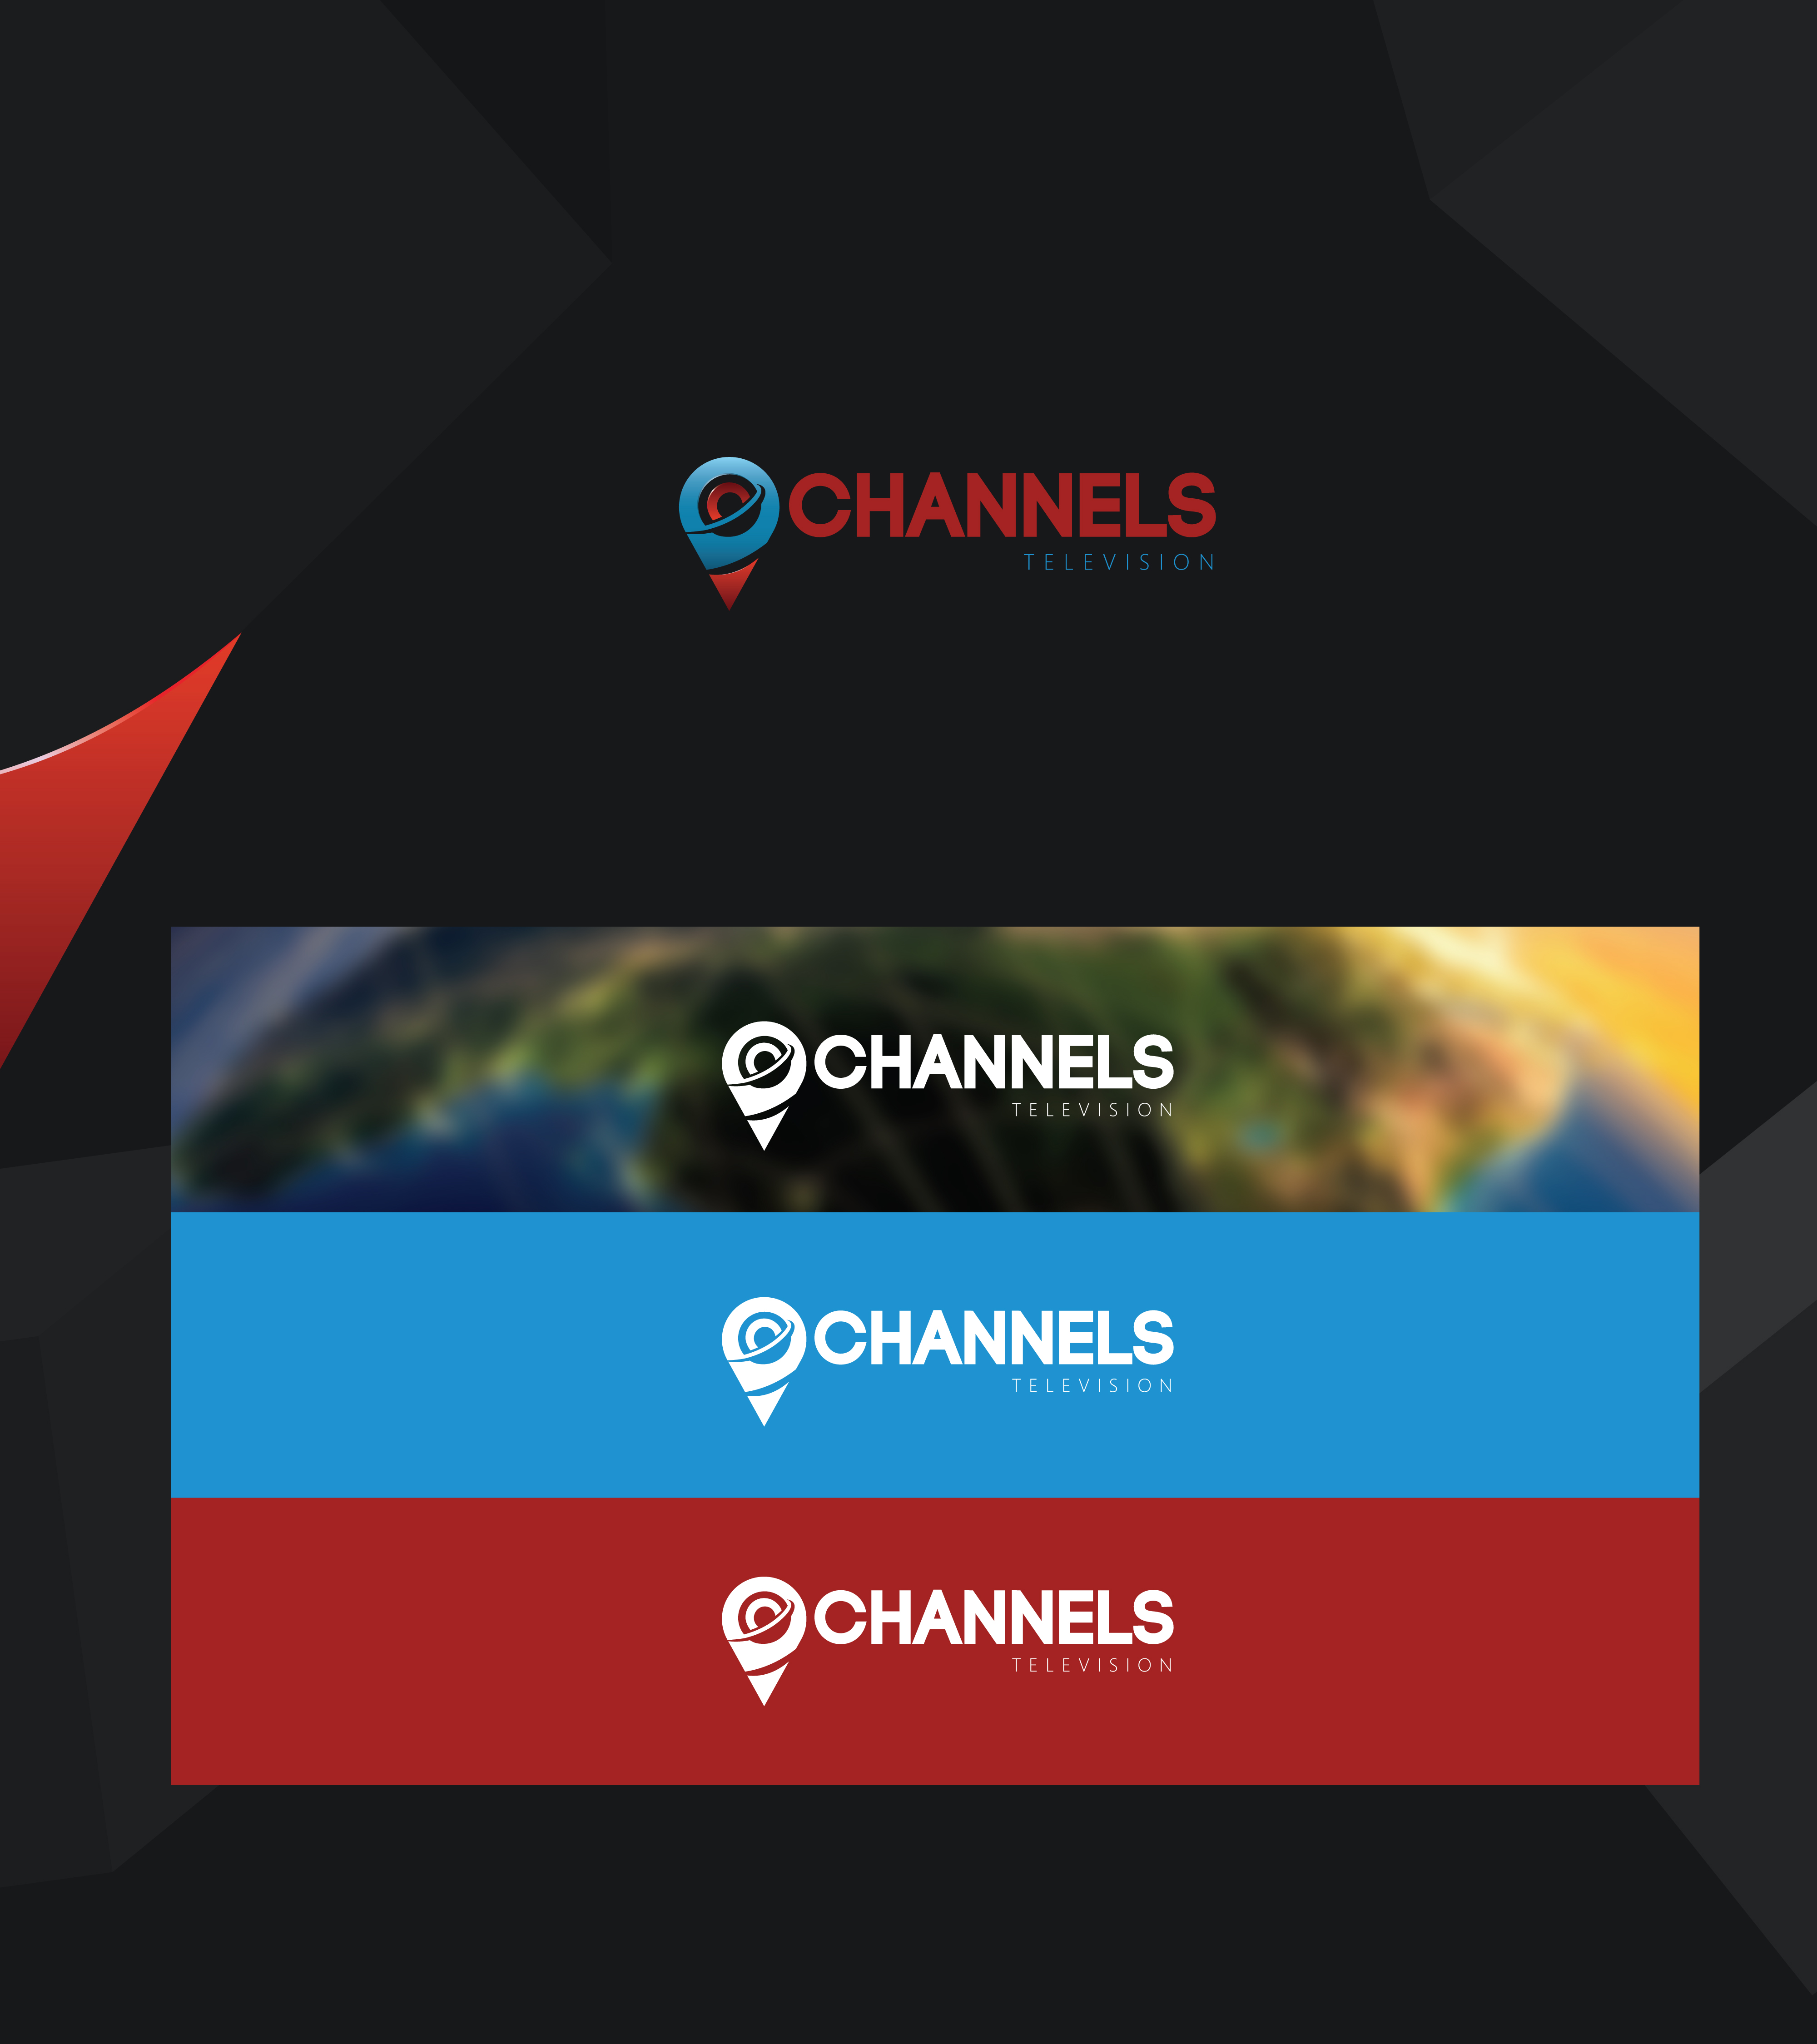 Channels Presentation-01